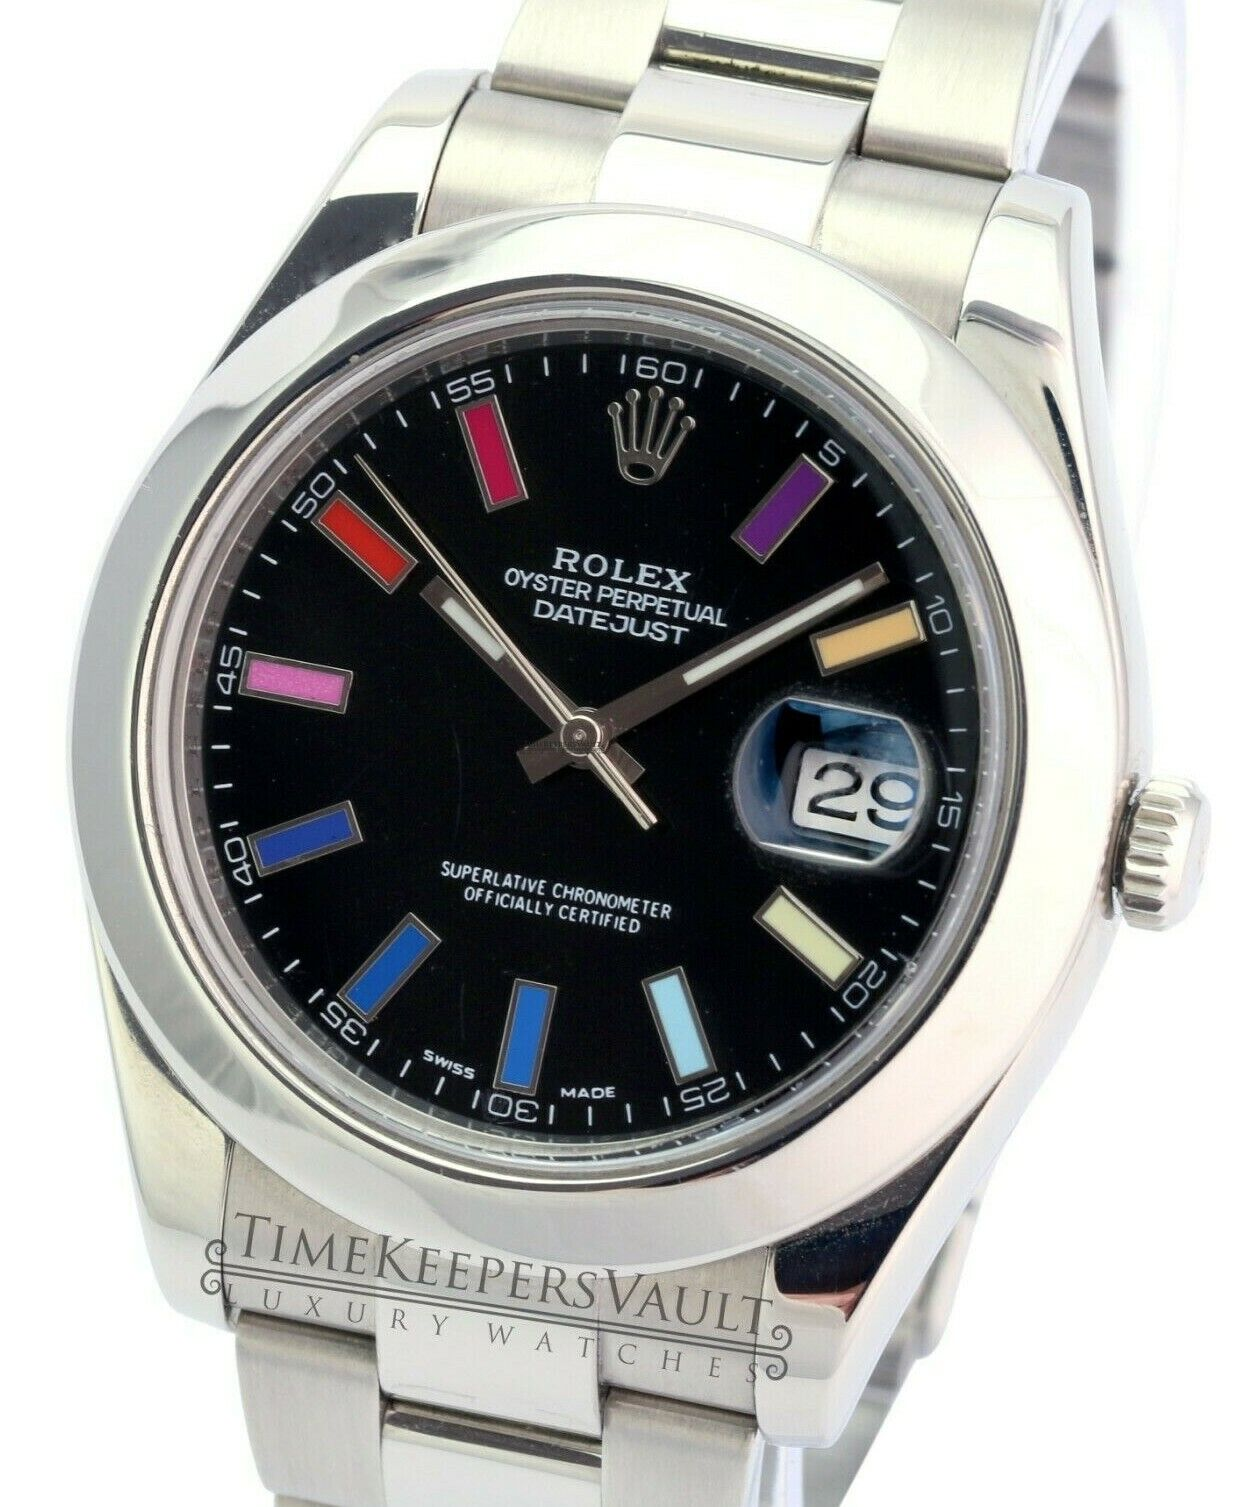 Details about Rolex Datejust Mens II 116300 Black Rainbow Index Dial Smooth  Bezel 41mm Watch